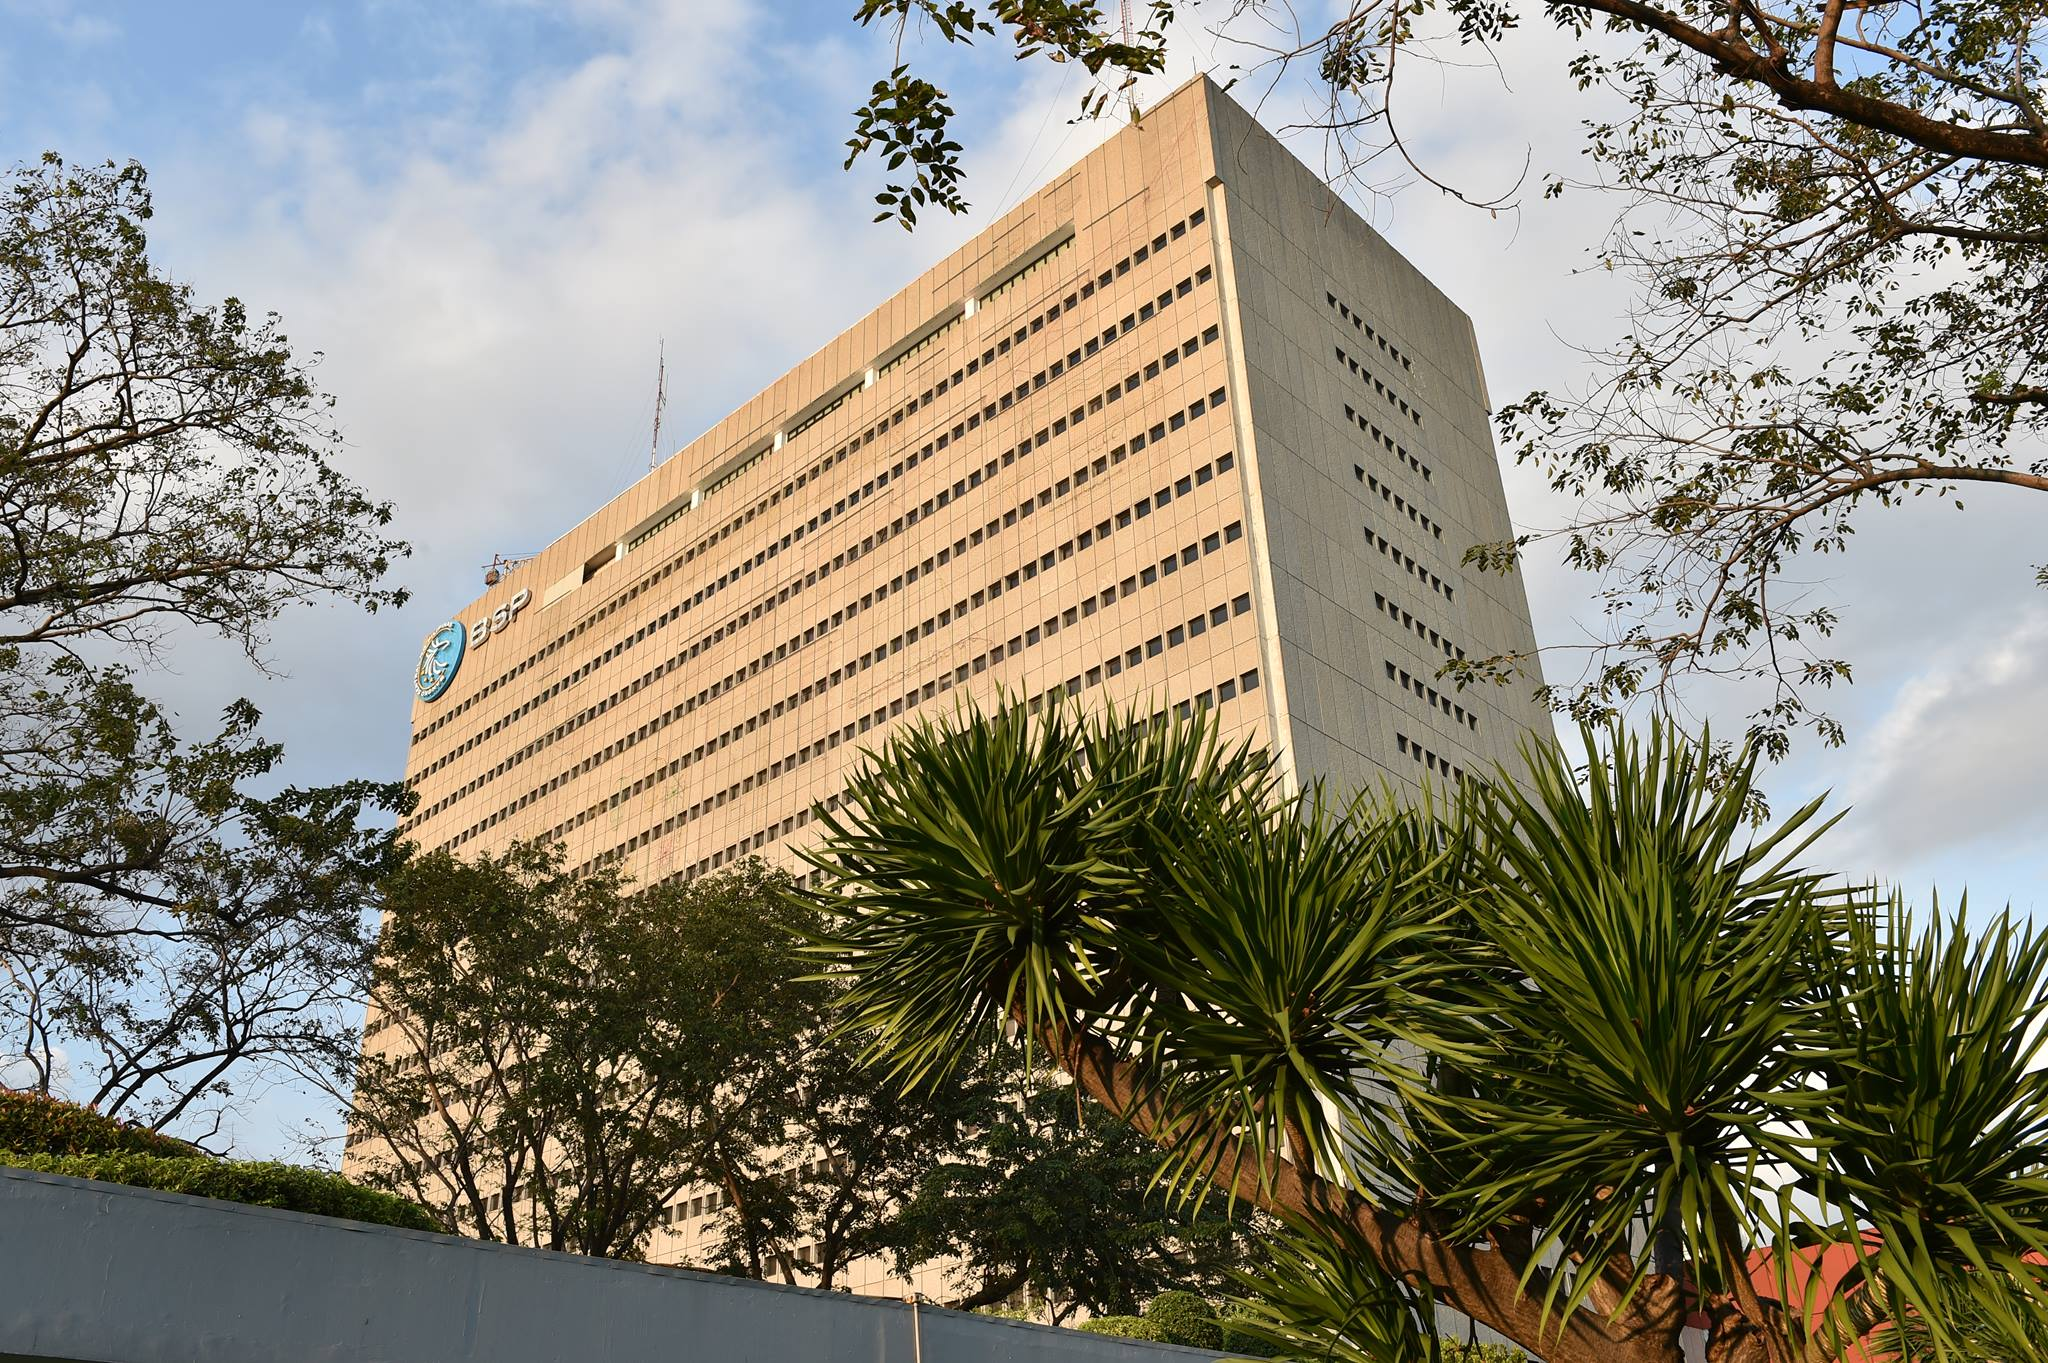 The Philippines banking system continues to prove its strength after ending 2016 with Php 154.13 billion net profit, up 13.9 percent from Php 135.34 Billion in 2015. (Photo: Bangko Sentral ng Pilipinas/Facebook)